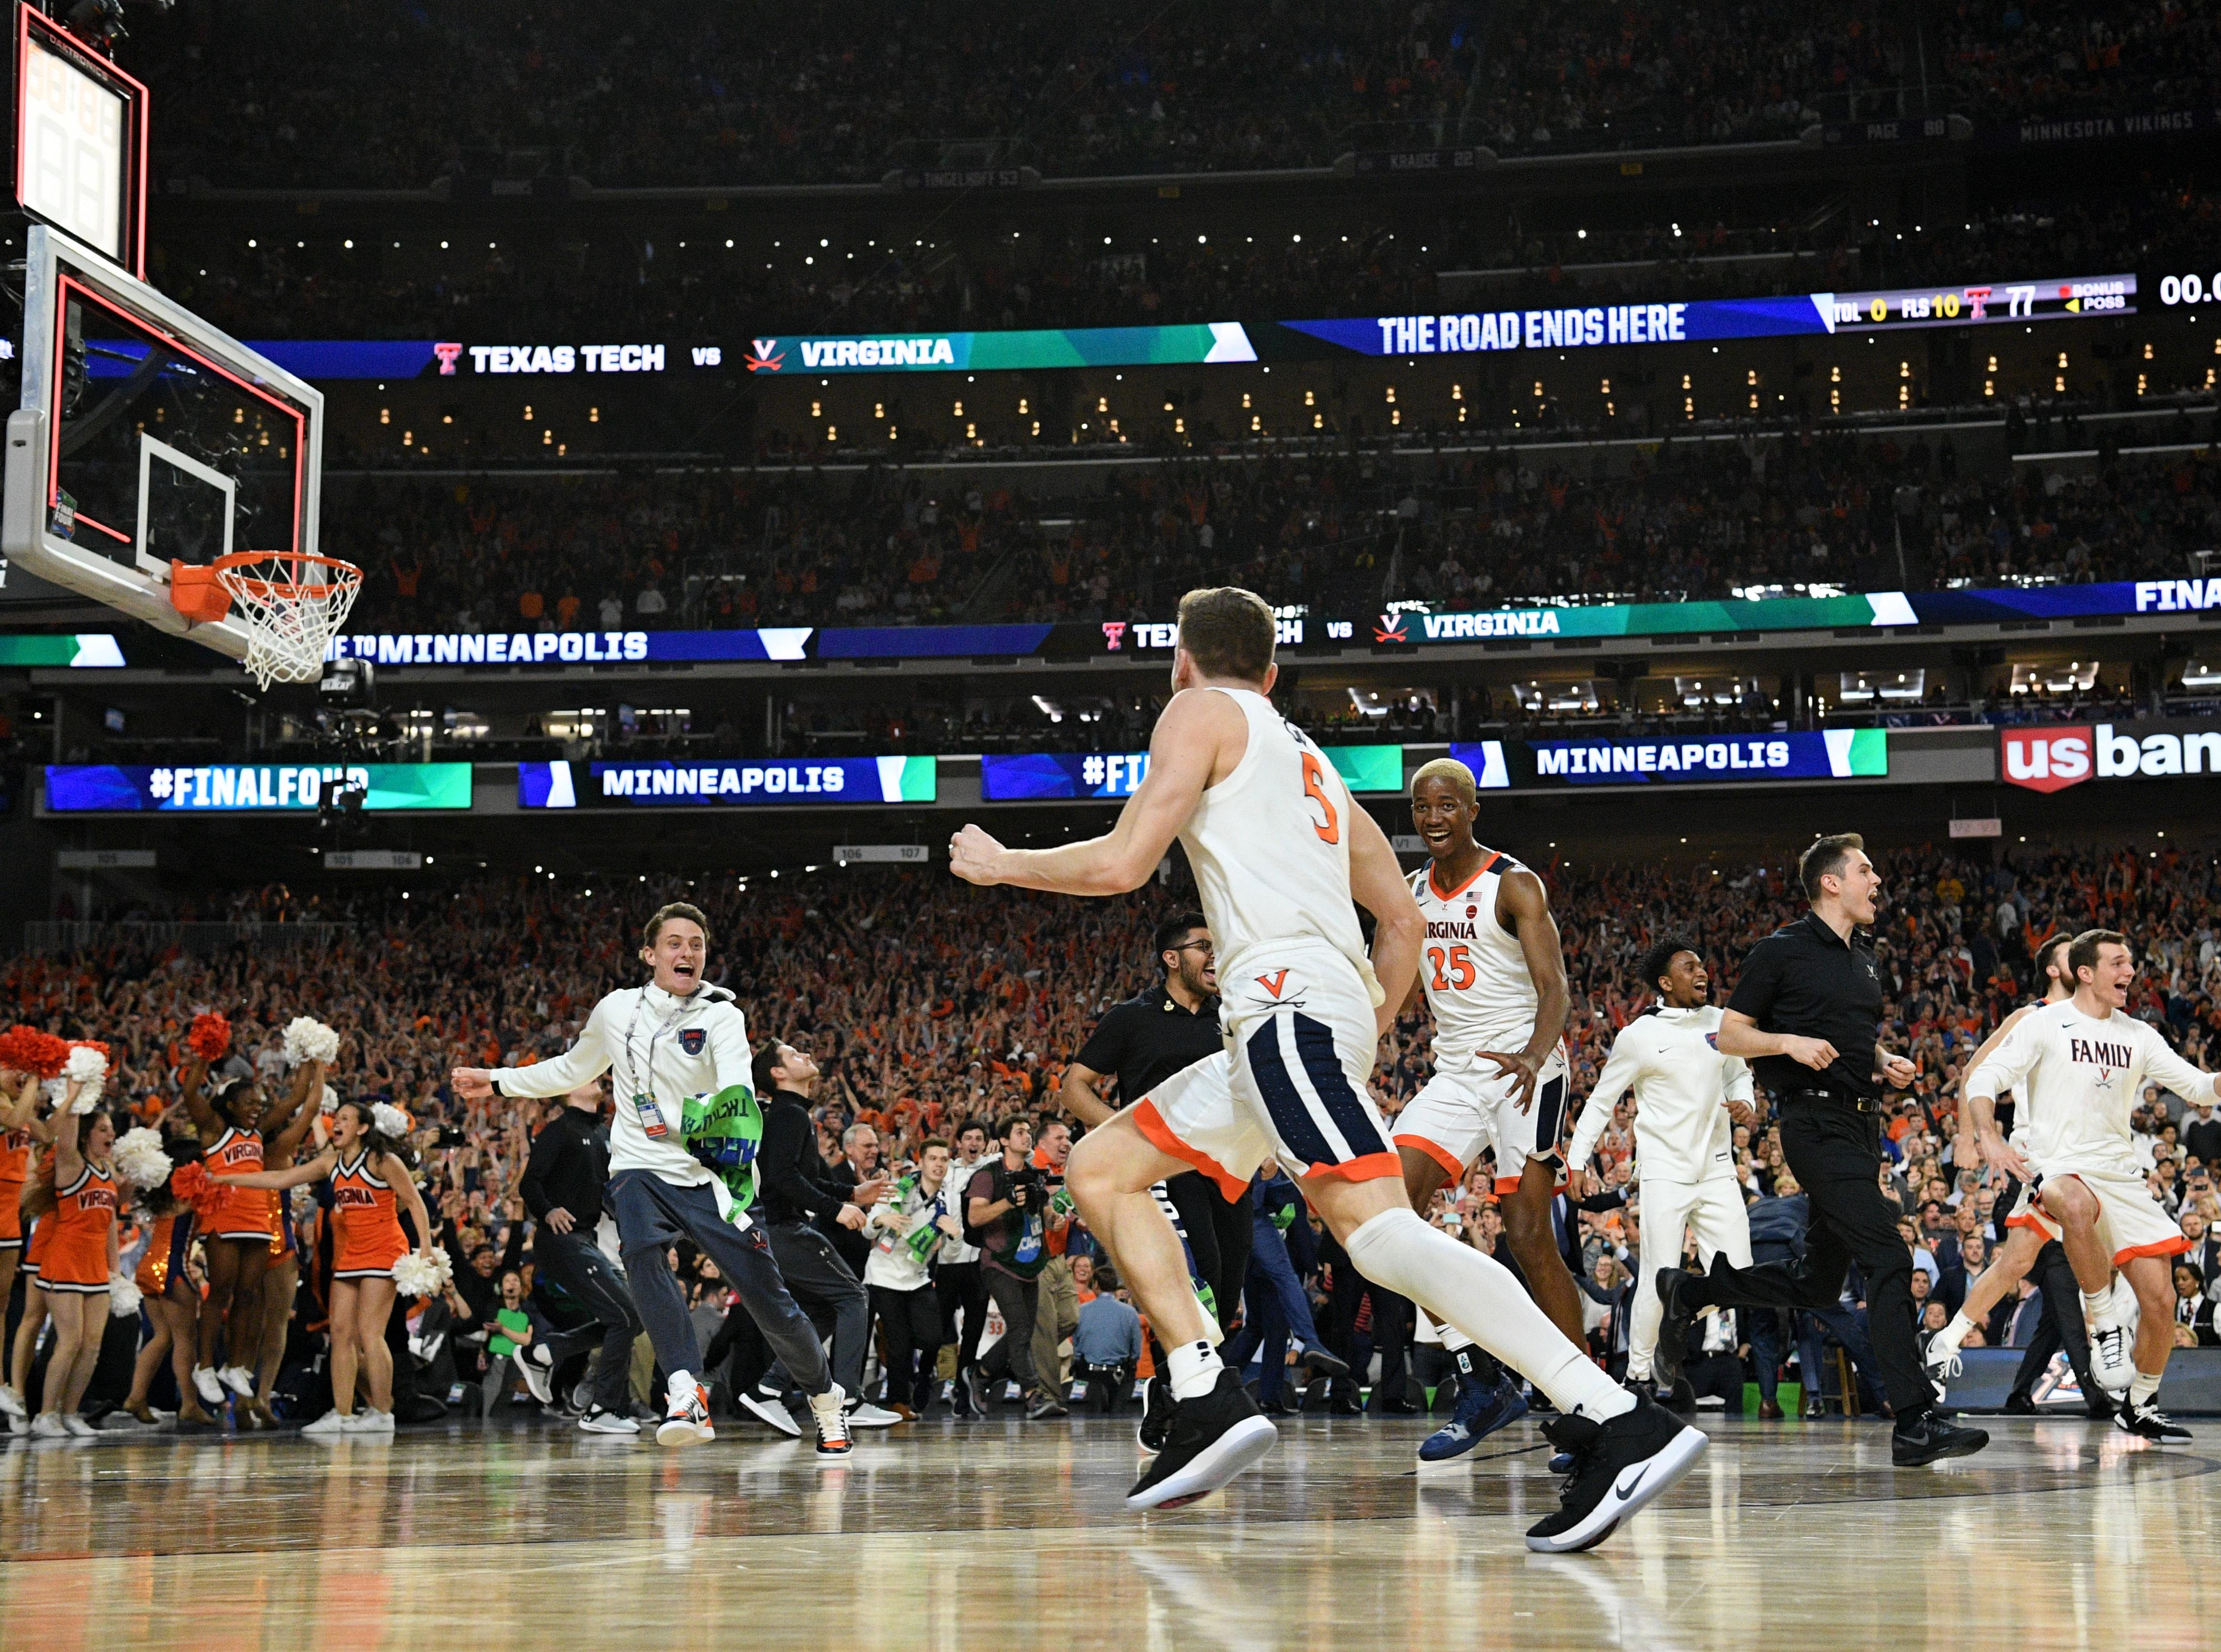 Apr 8, 2019; Minneapolis, MN, USA; Virginia Cavaliers guard Kyle Guy (5) celebrates with teammates after defeating the Texas Tech Red Raiders in the championship game of the 2019 men's Final Four at US Bank Stadium. Mandatory Credit: Robert Deutsch-USA TODAY Sports